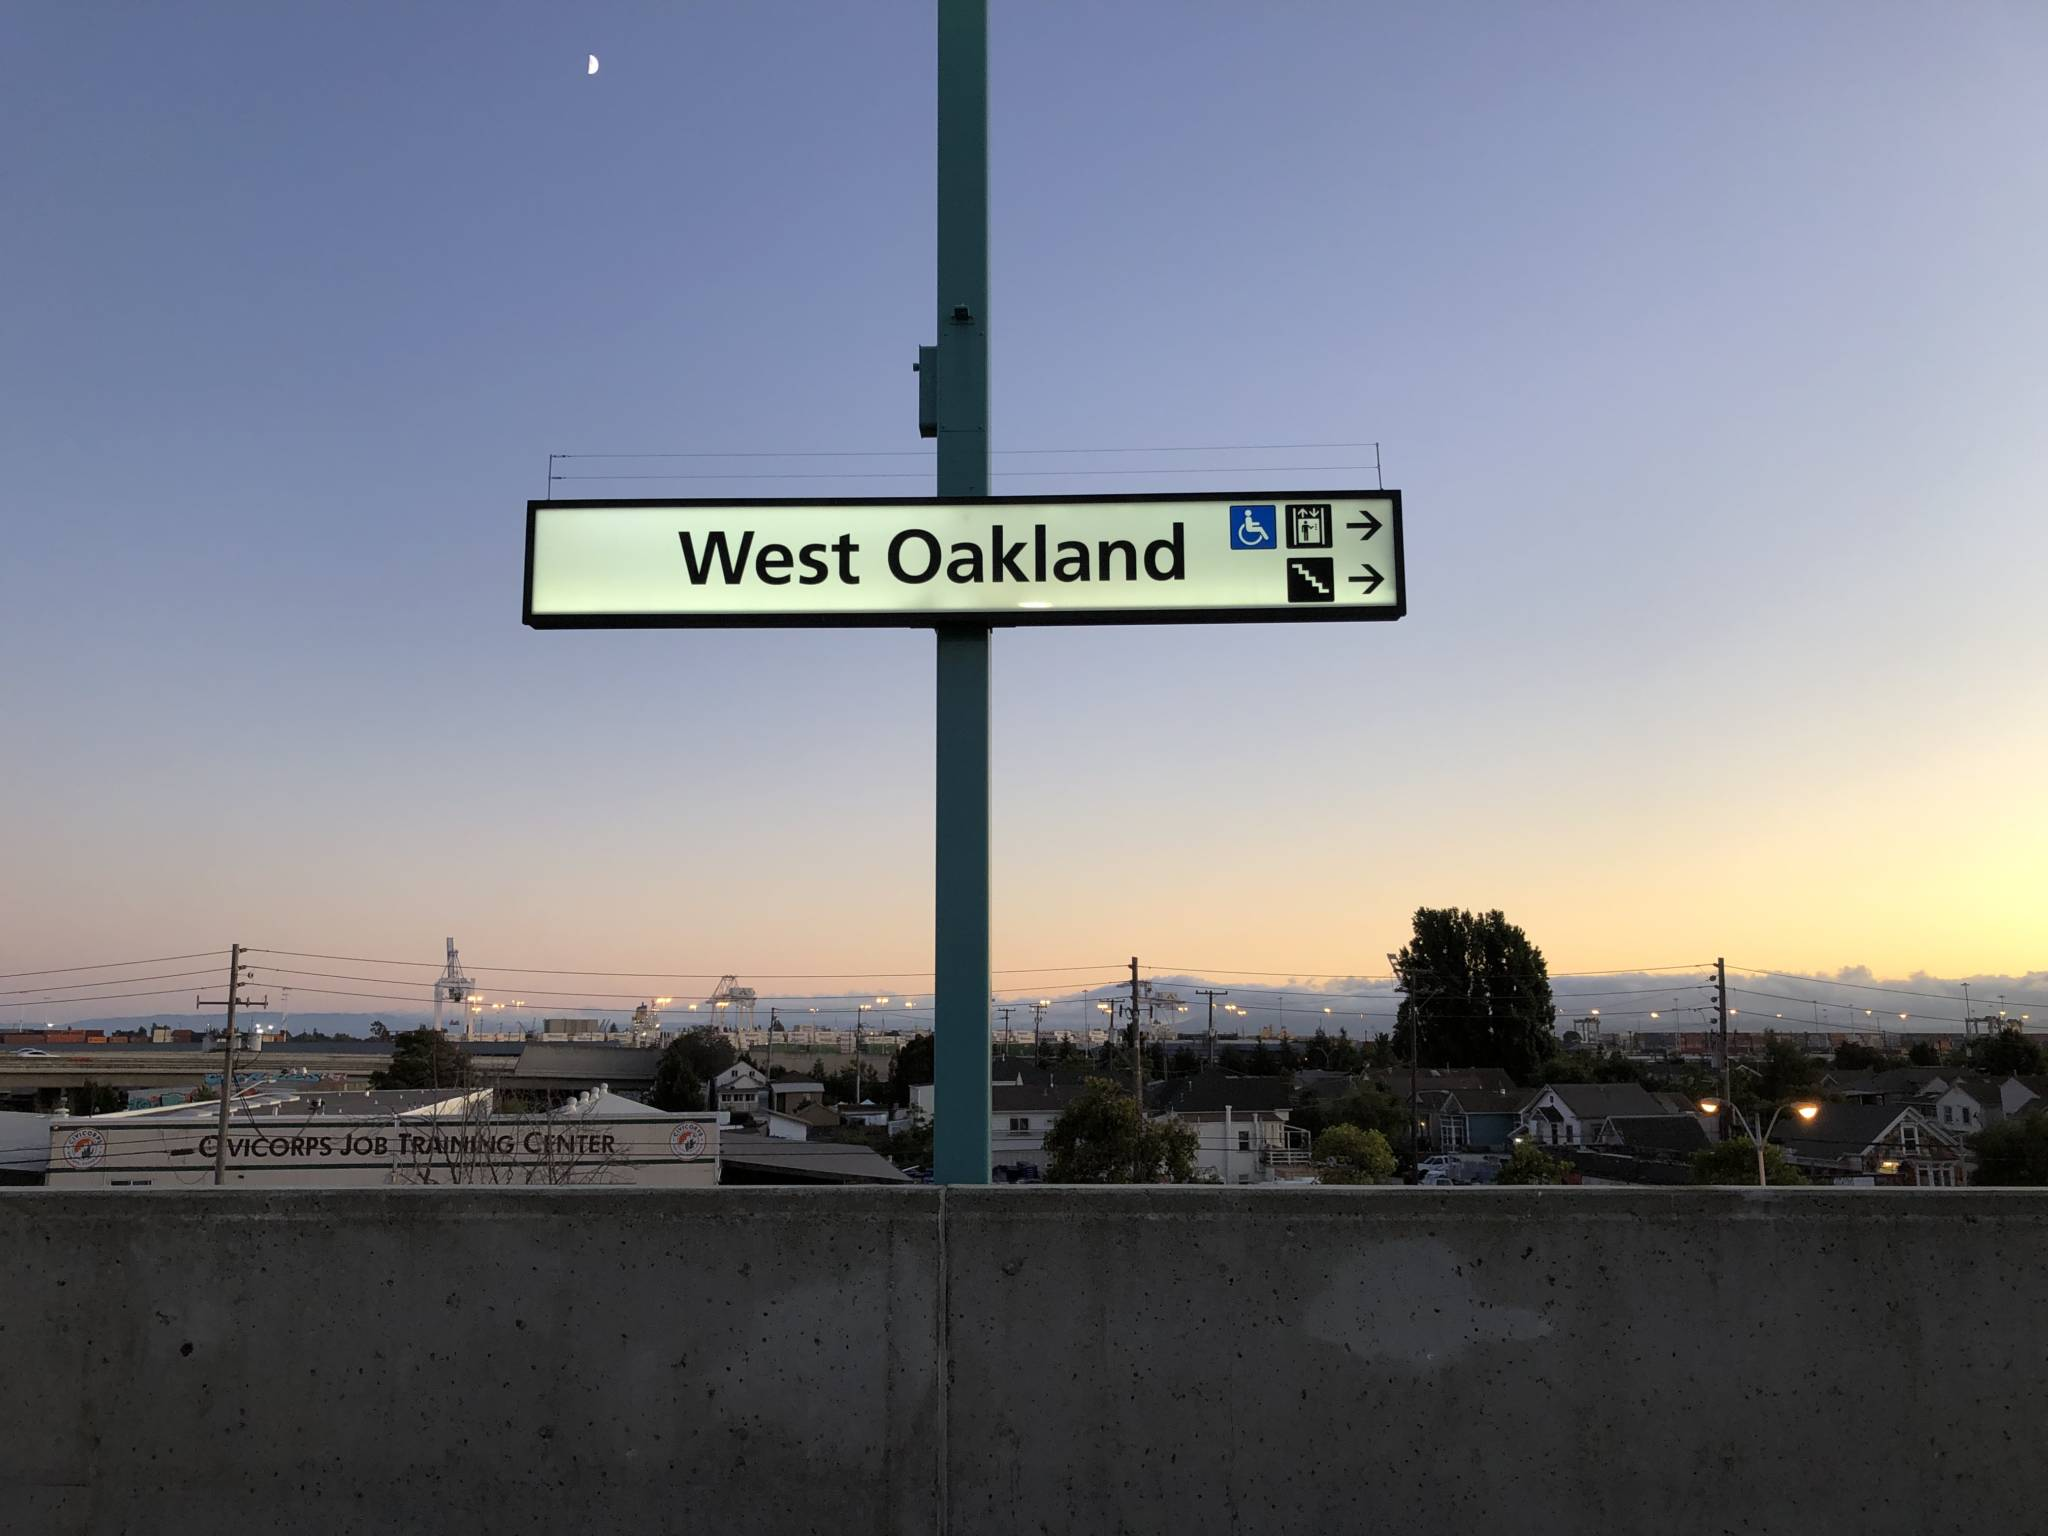 Out of the Blocks Takes Us On A Listening Tour Through West Oakland